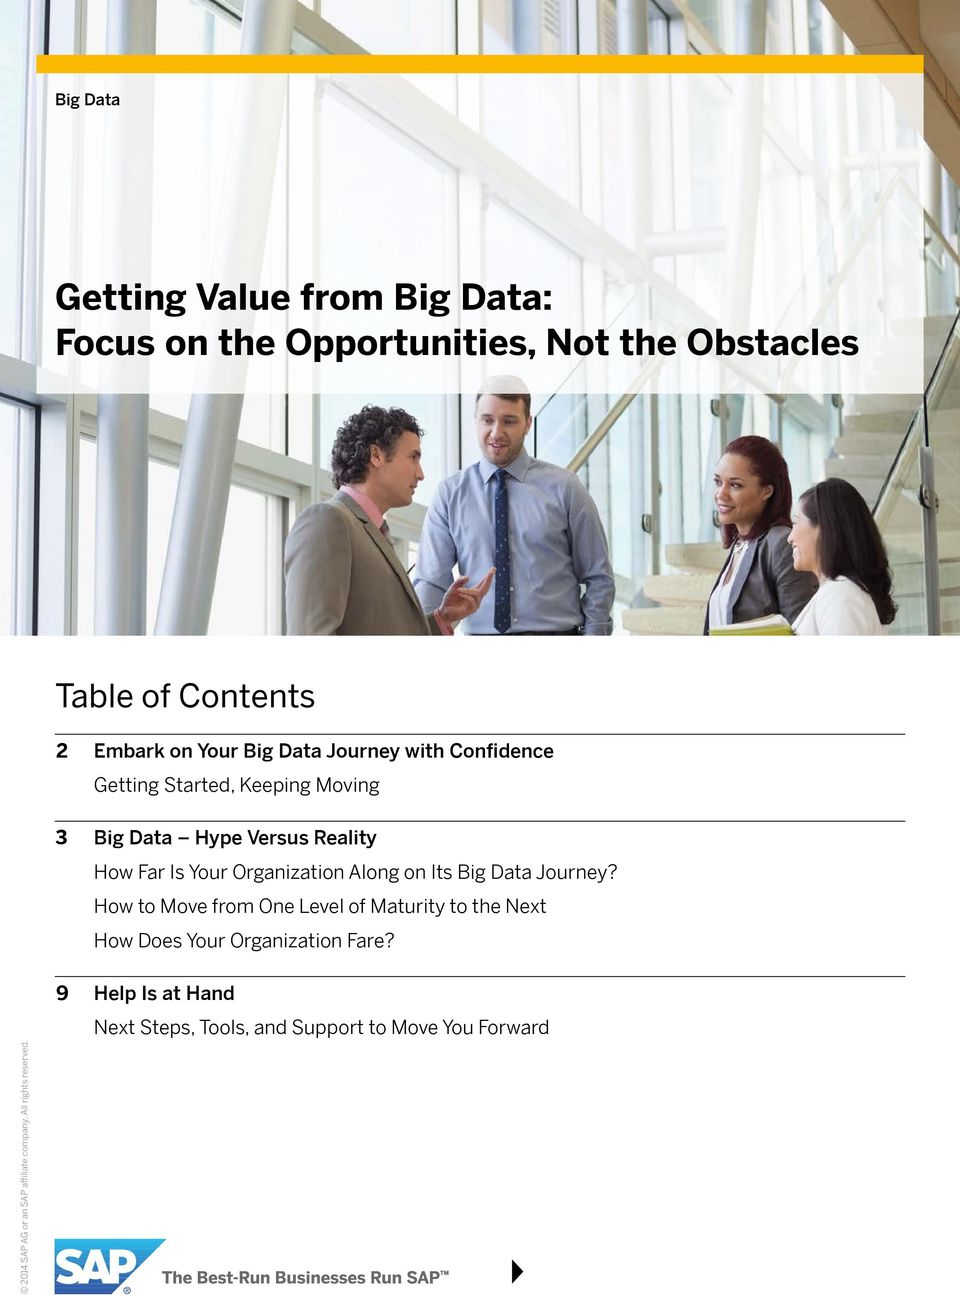 Reality How Far Is Your Organization Along on Its Big Data Journey?